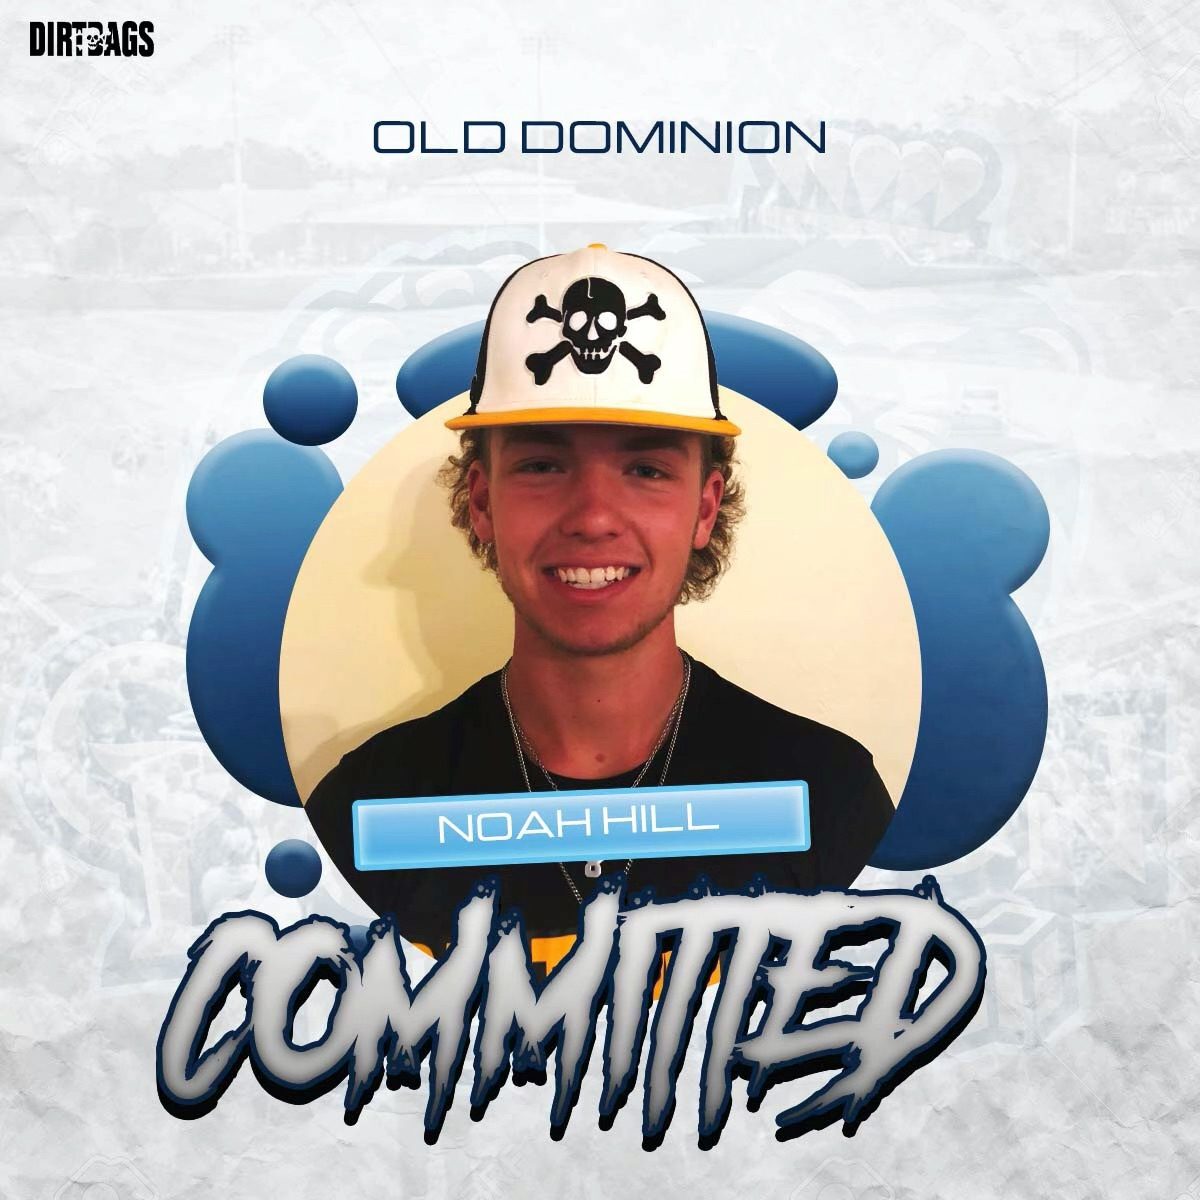 Noah Hill commits to Old Dominion University.